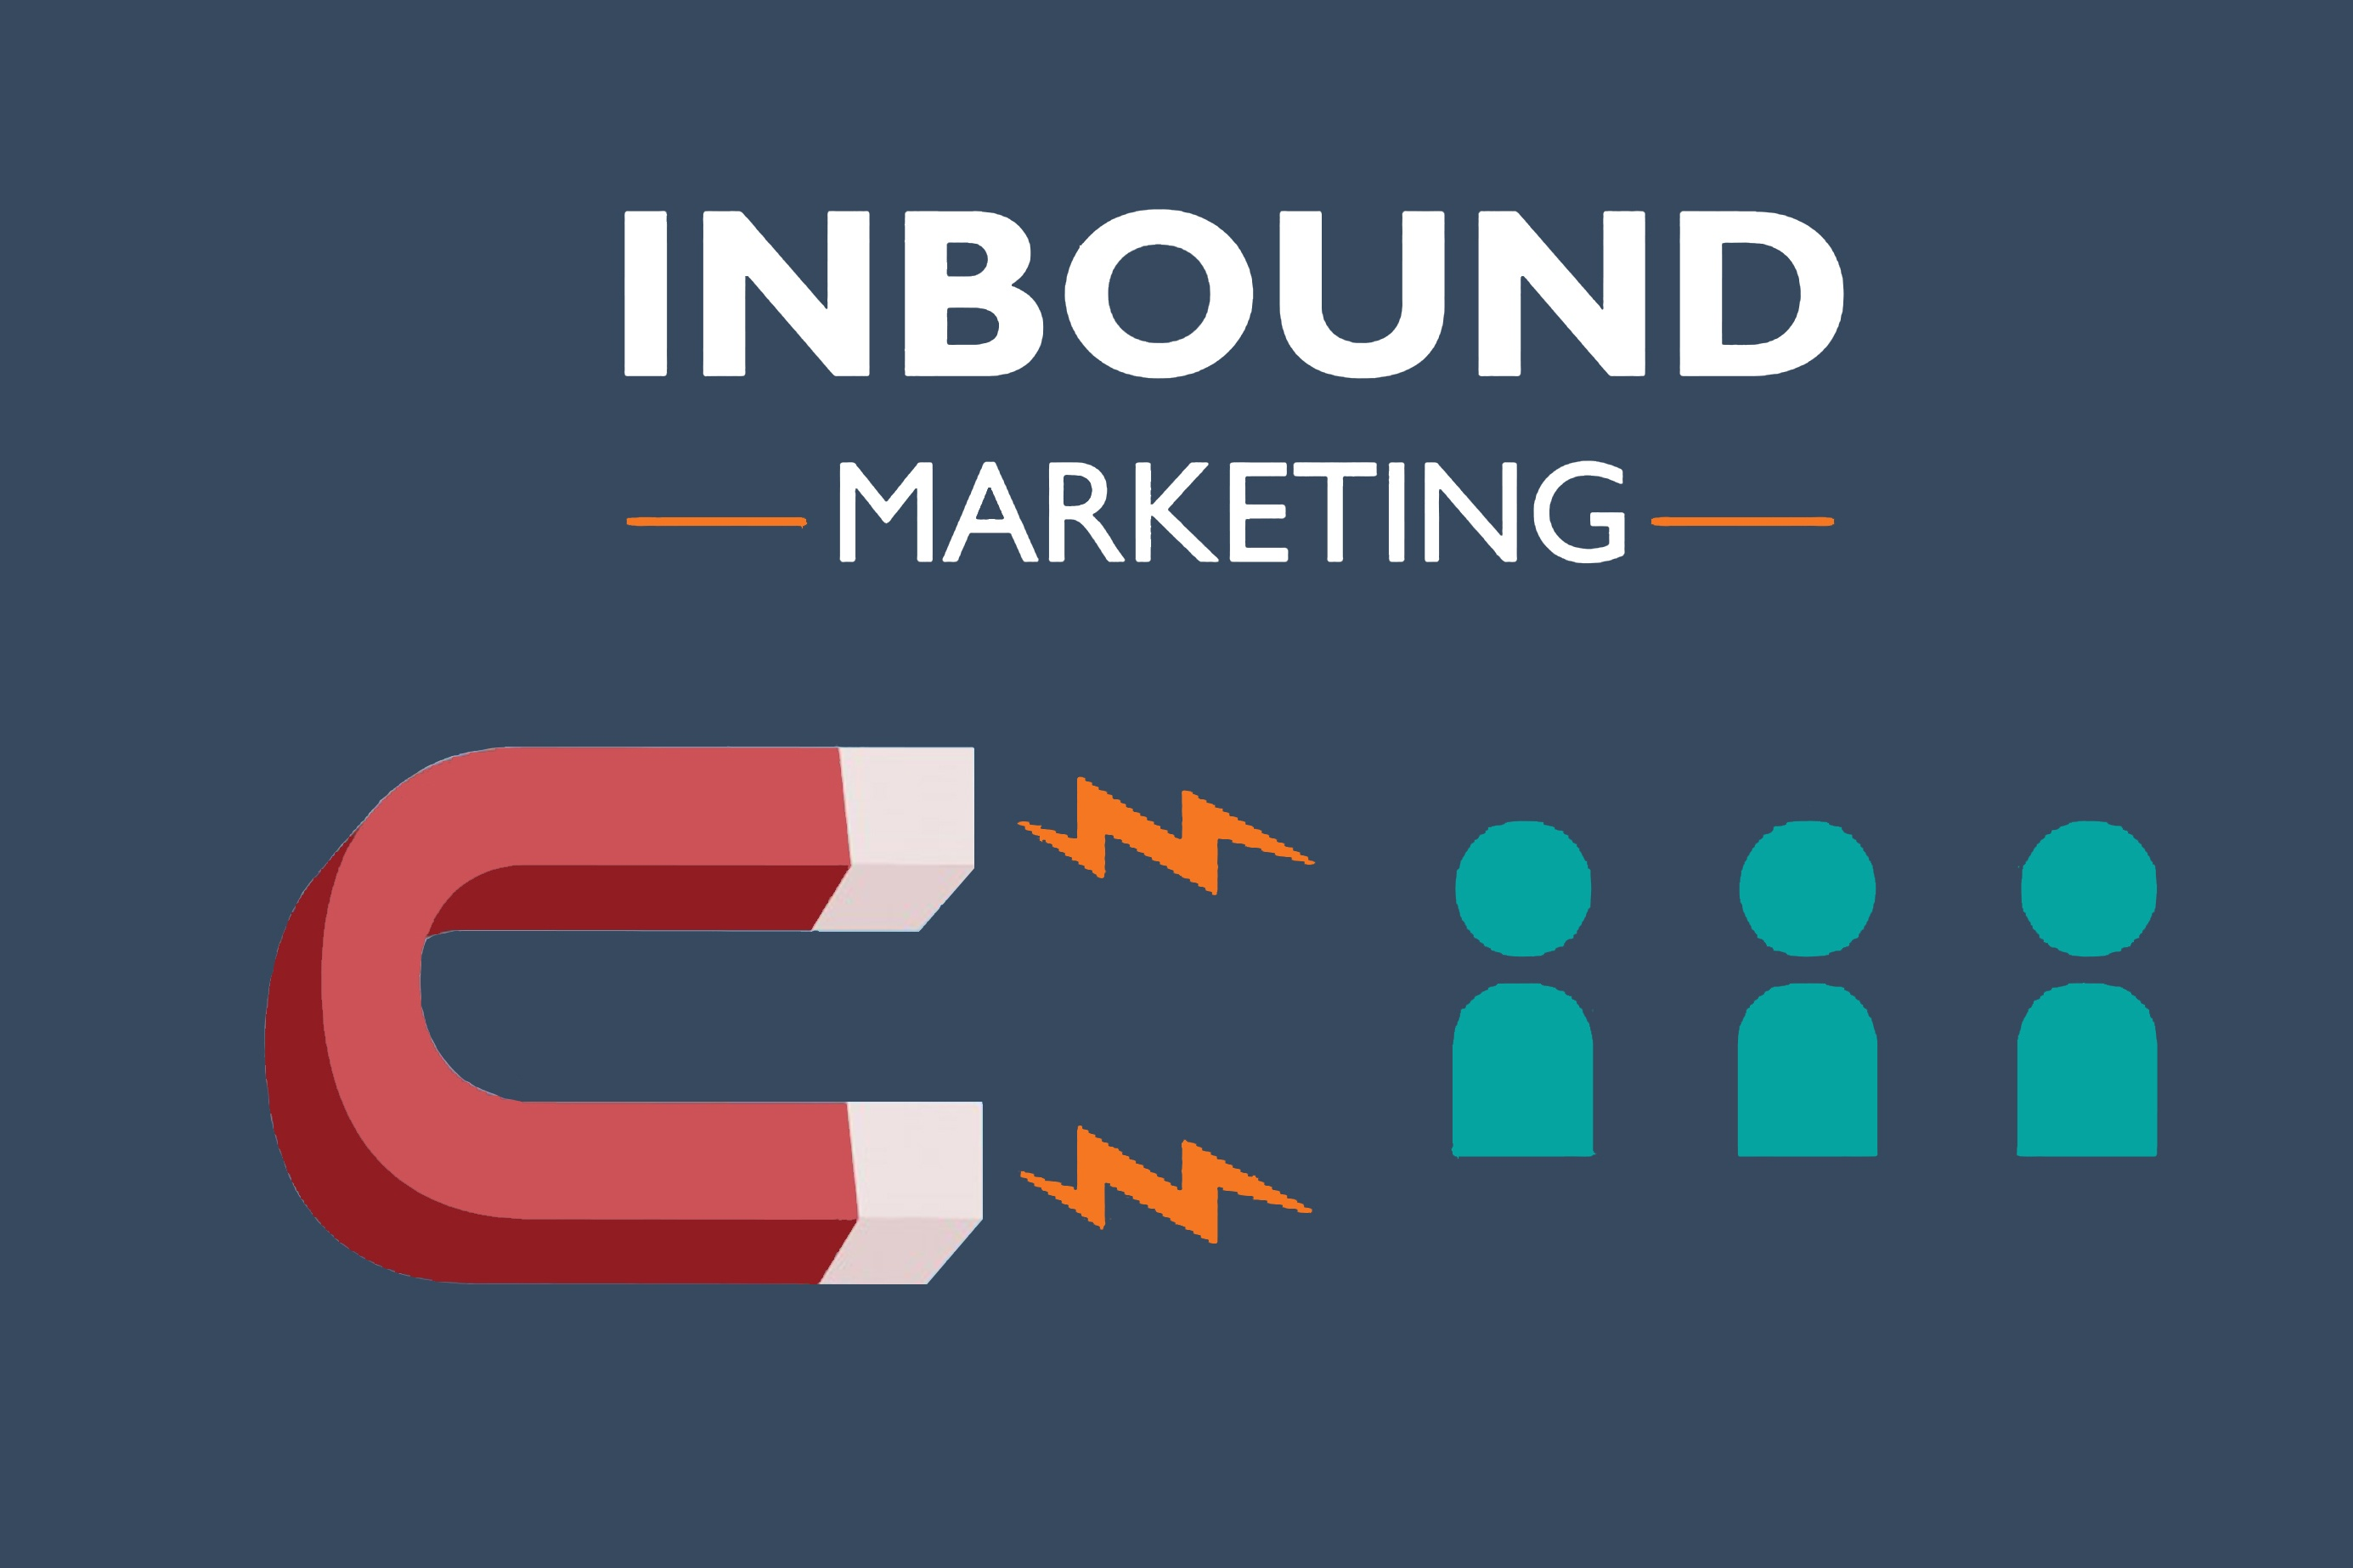 Is Inbound the Most Effective Marketing Strategy